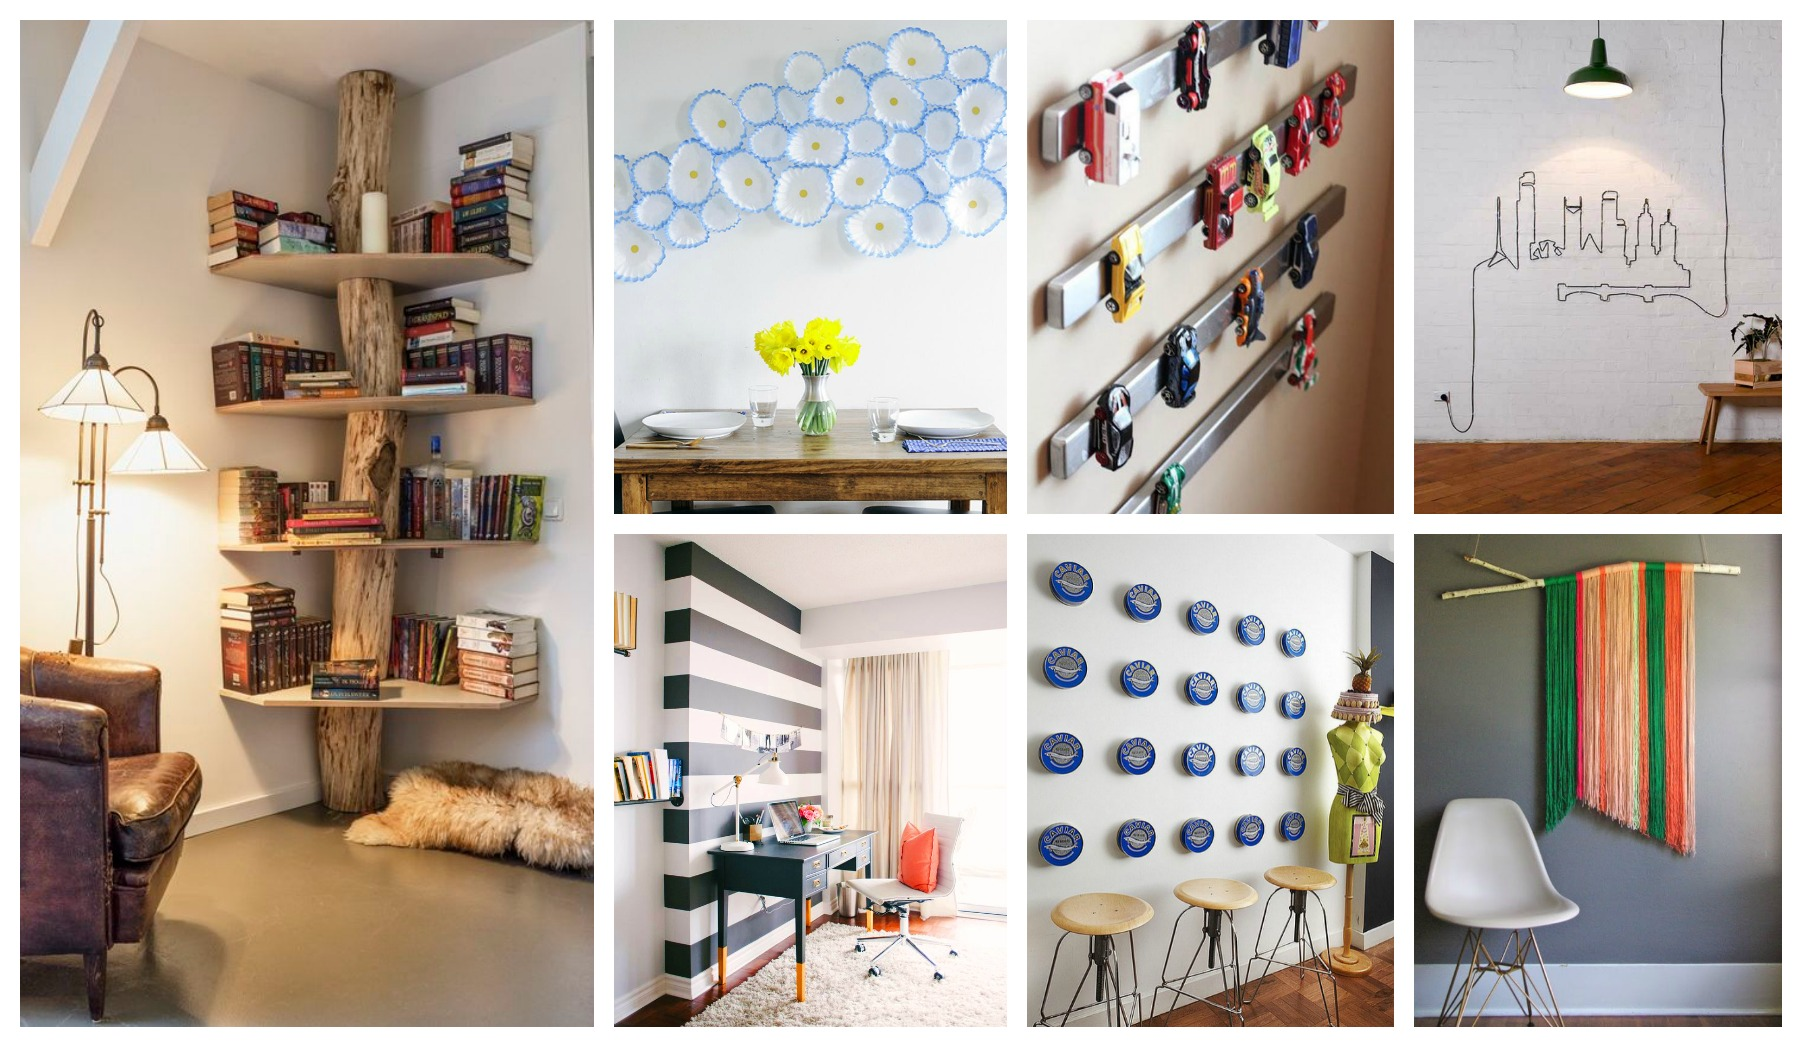 Cheap Wall Art And Decor: Cheap And Easy Wall Decorations That Will Amaze You